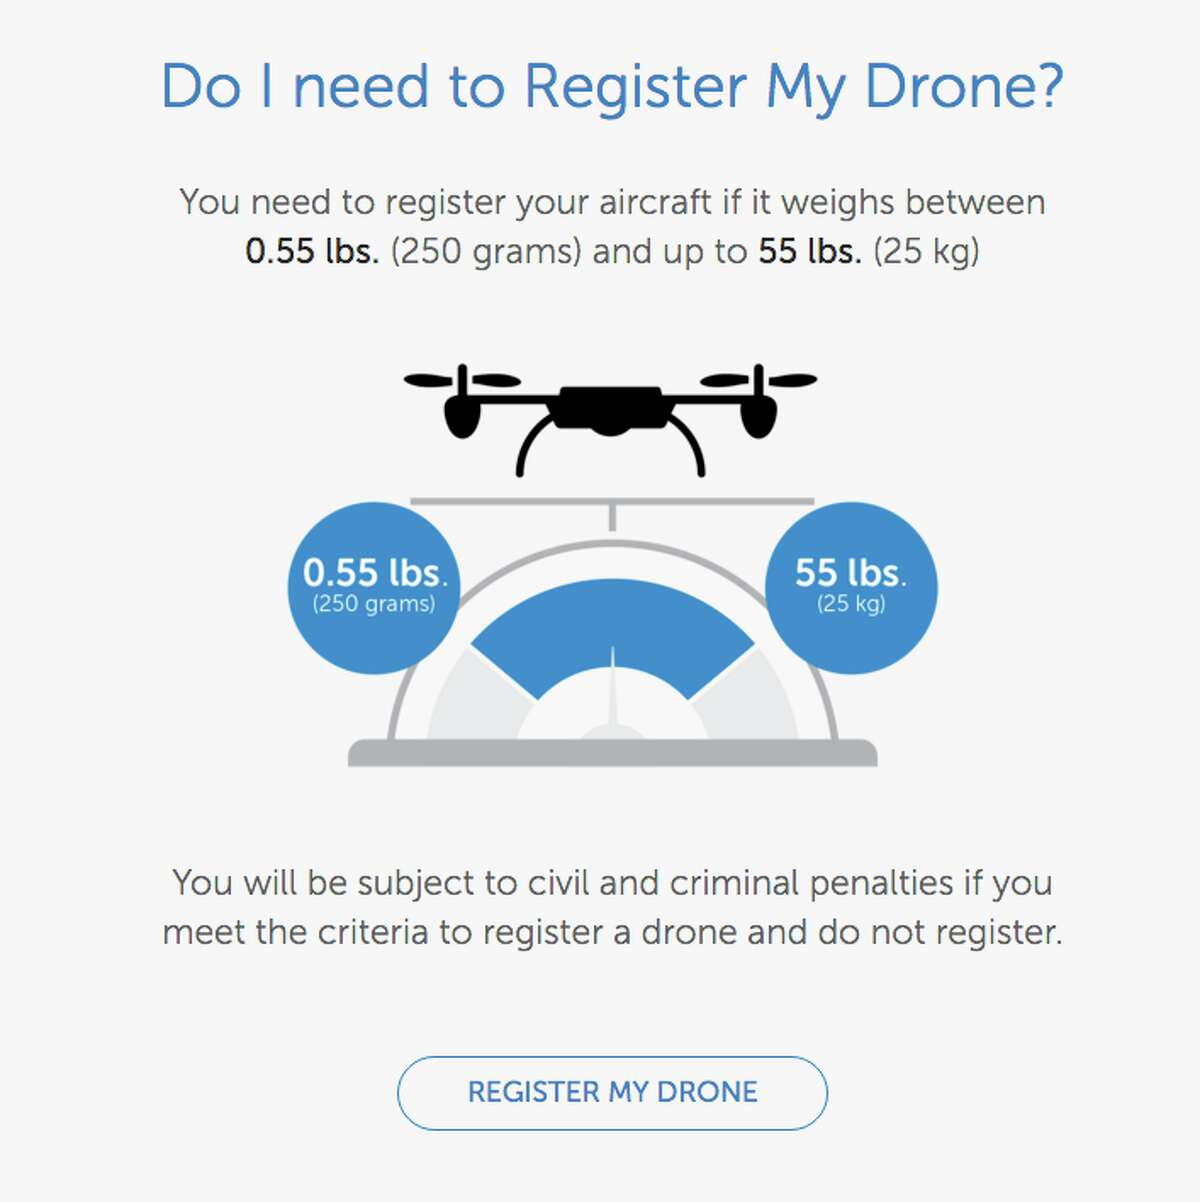 You'll have to register your drone if it weights over .55 pounds and is under 55 pounds.